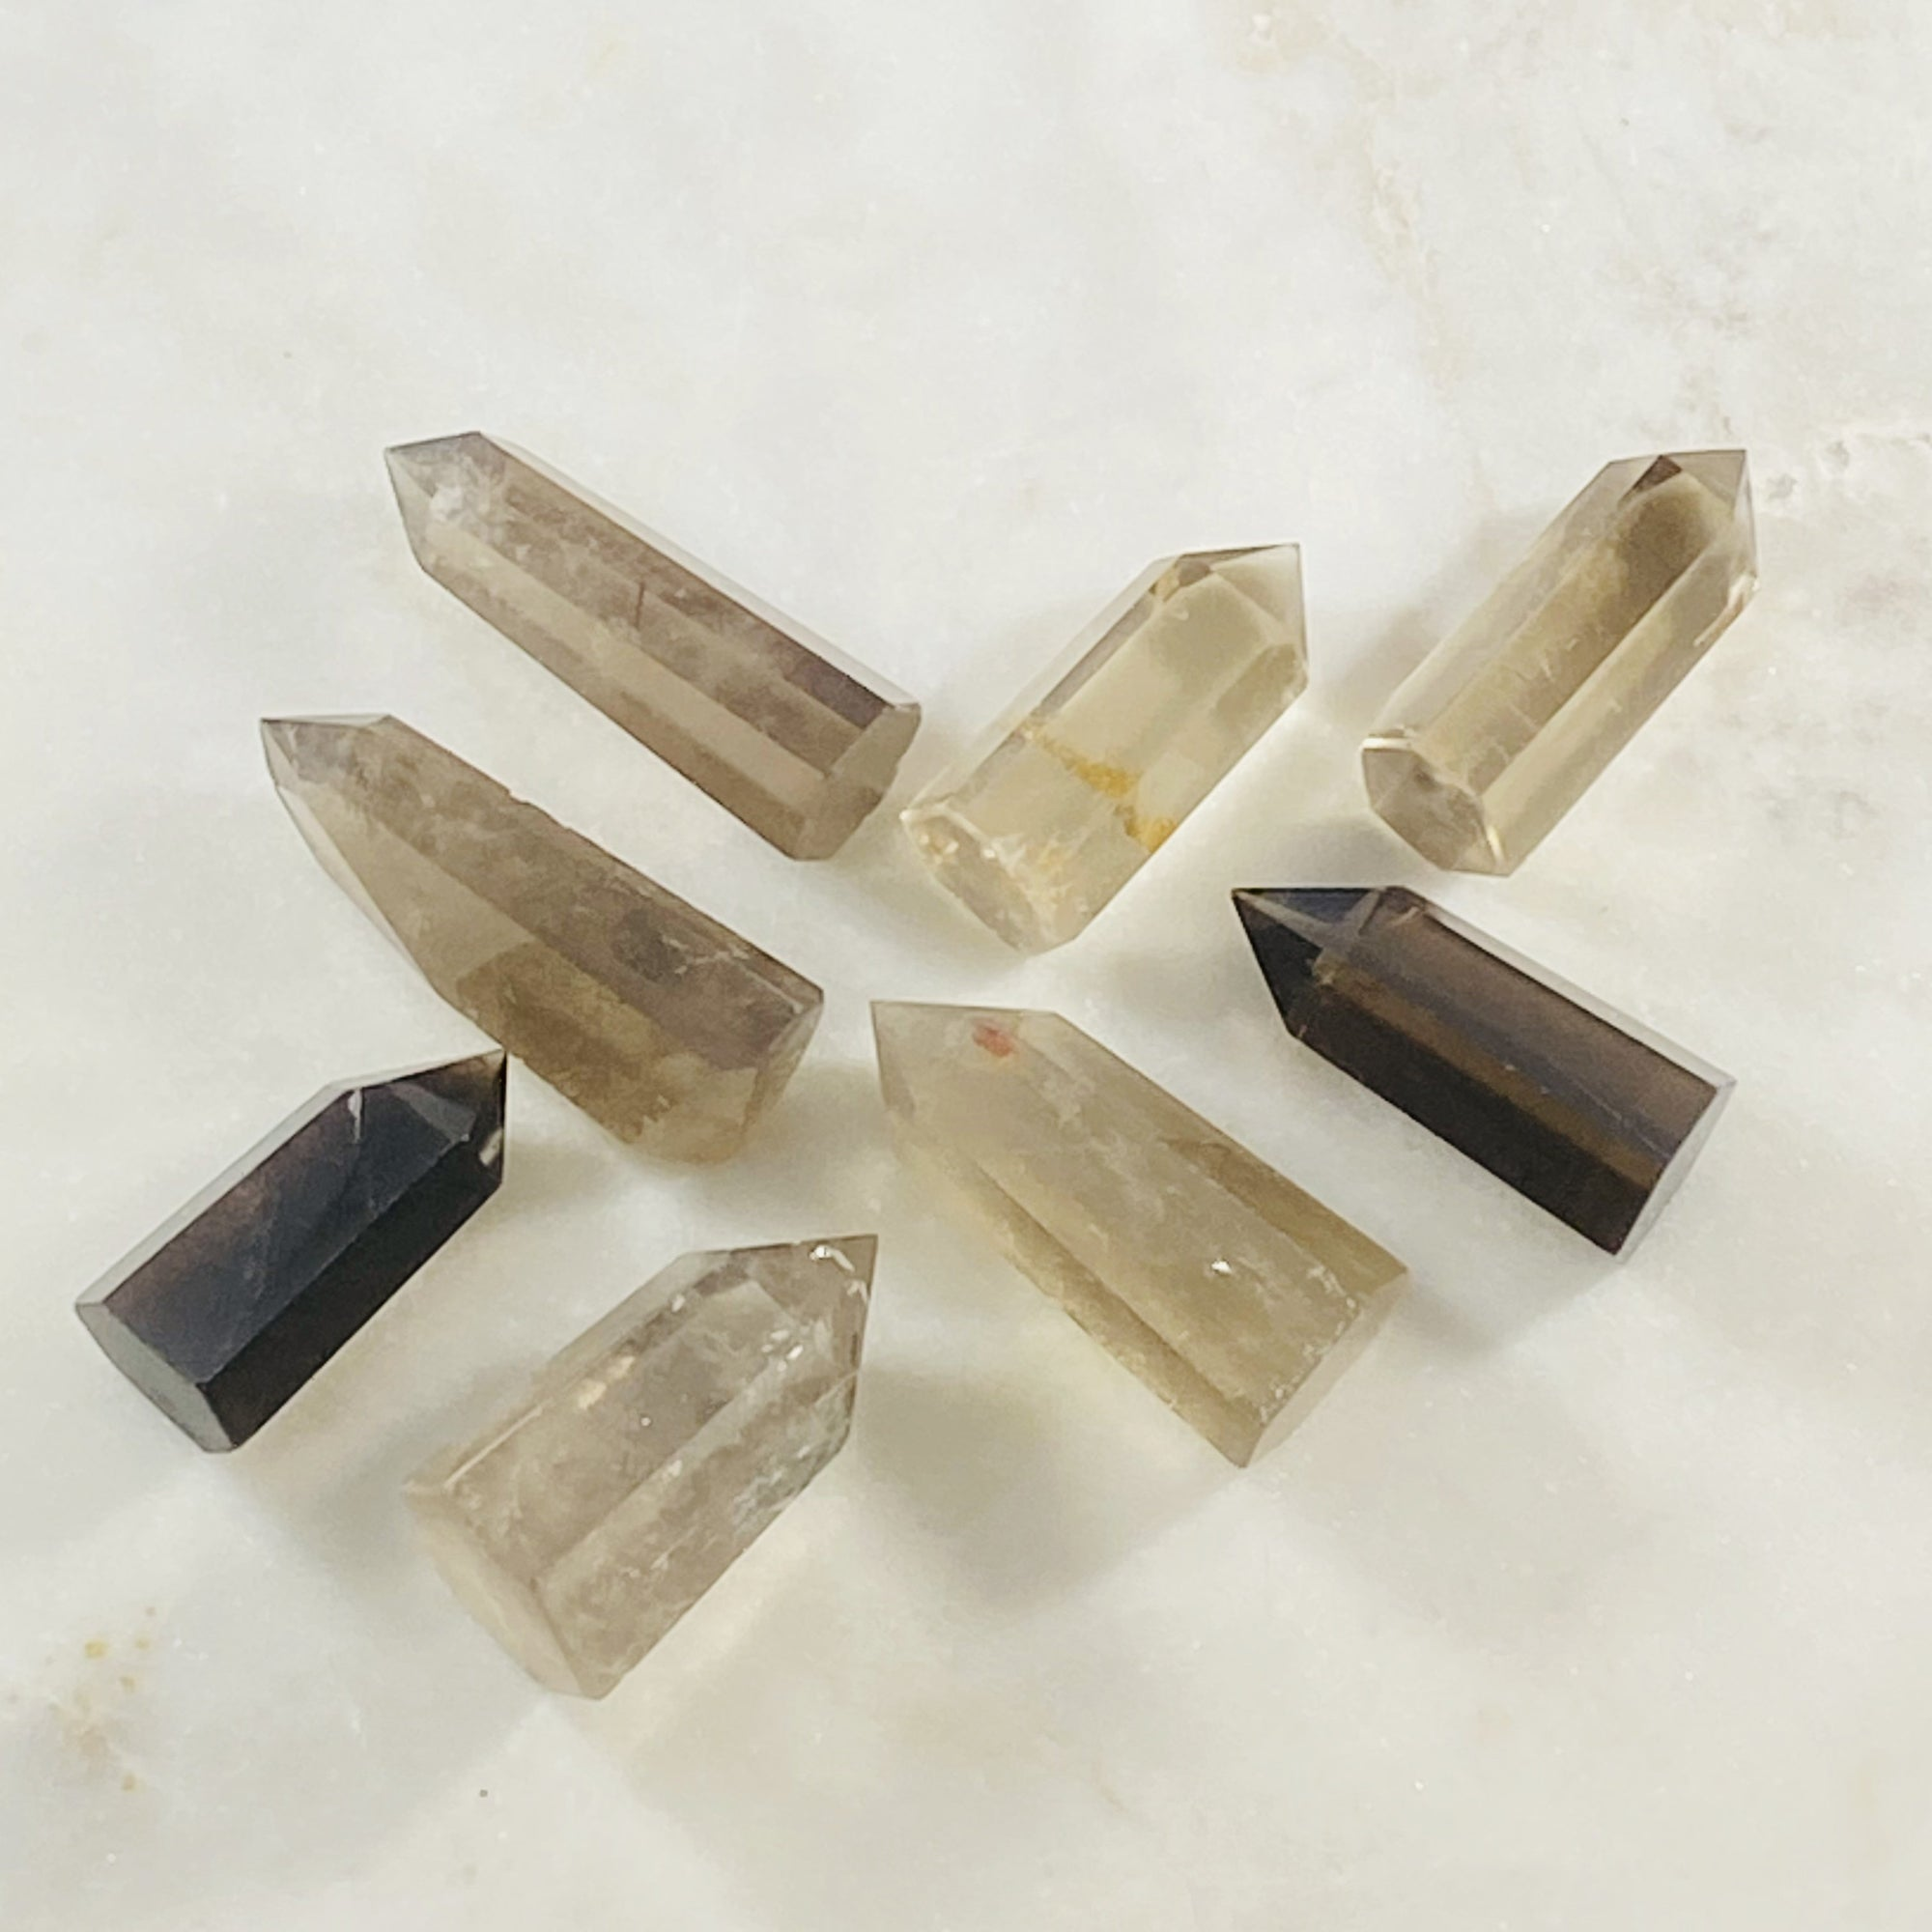 Smokey quartz for grounding and balance